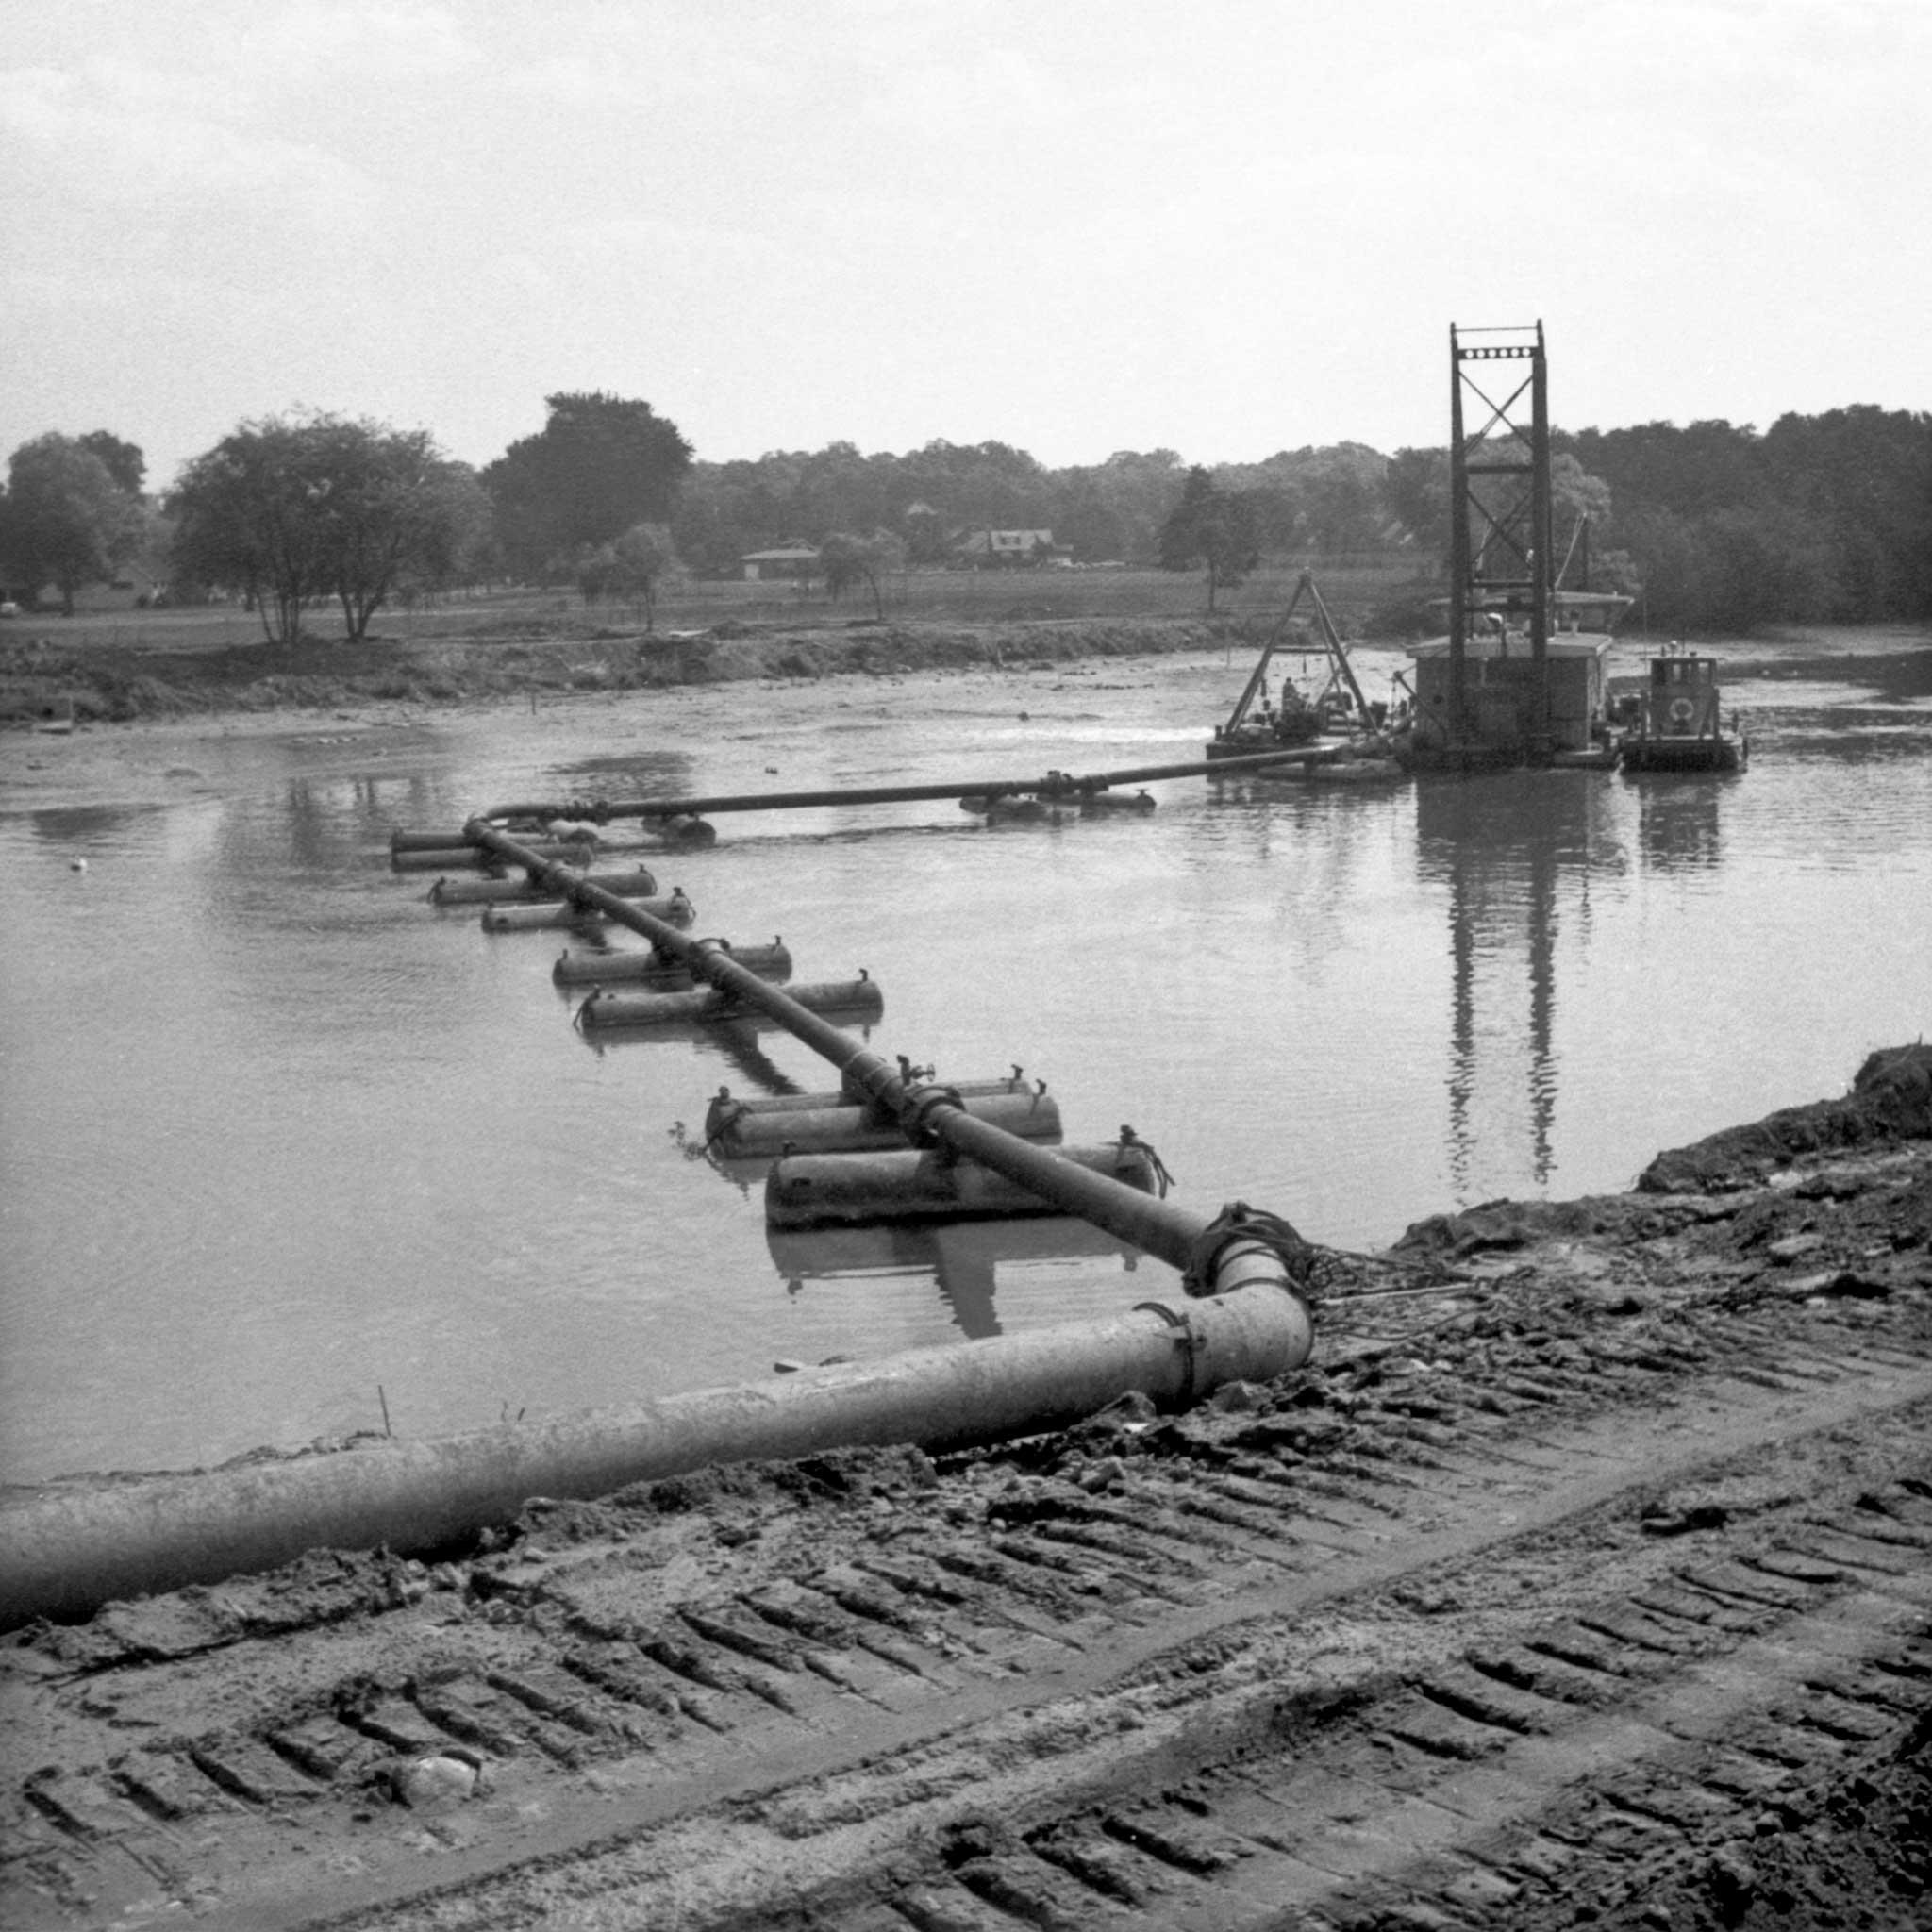 black and white image of pontoons and a pumping derrick in a body of water with trees in the background and railroad in the foreground